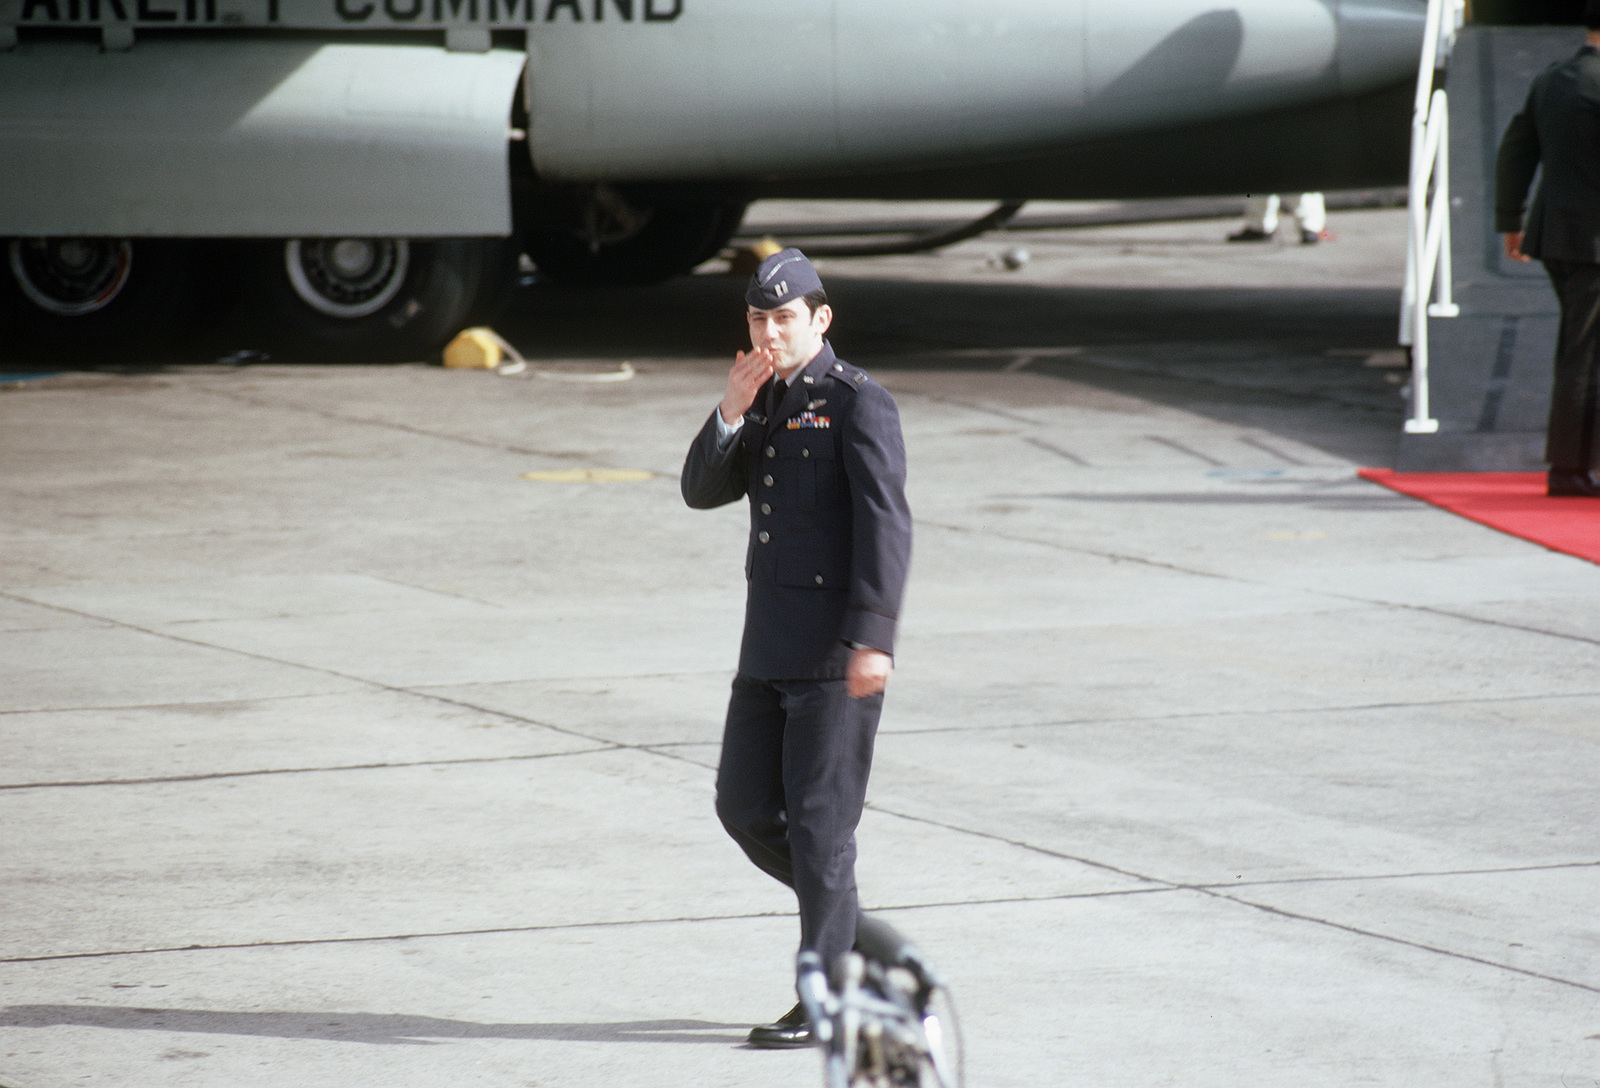 Unidentified former POW/U.S. Air Force Captain blows a kiss to the public and press there to greet the plane load of former POWs flown in from Clark Air Base